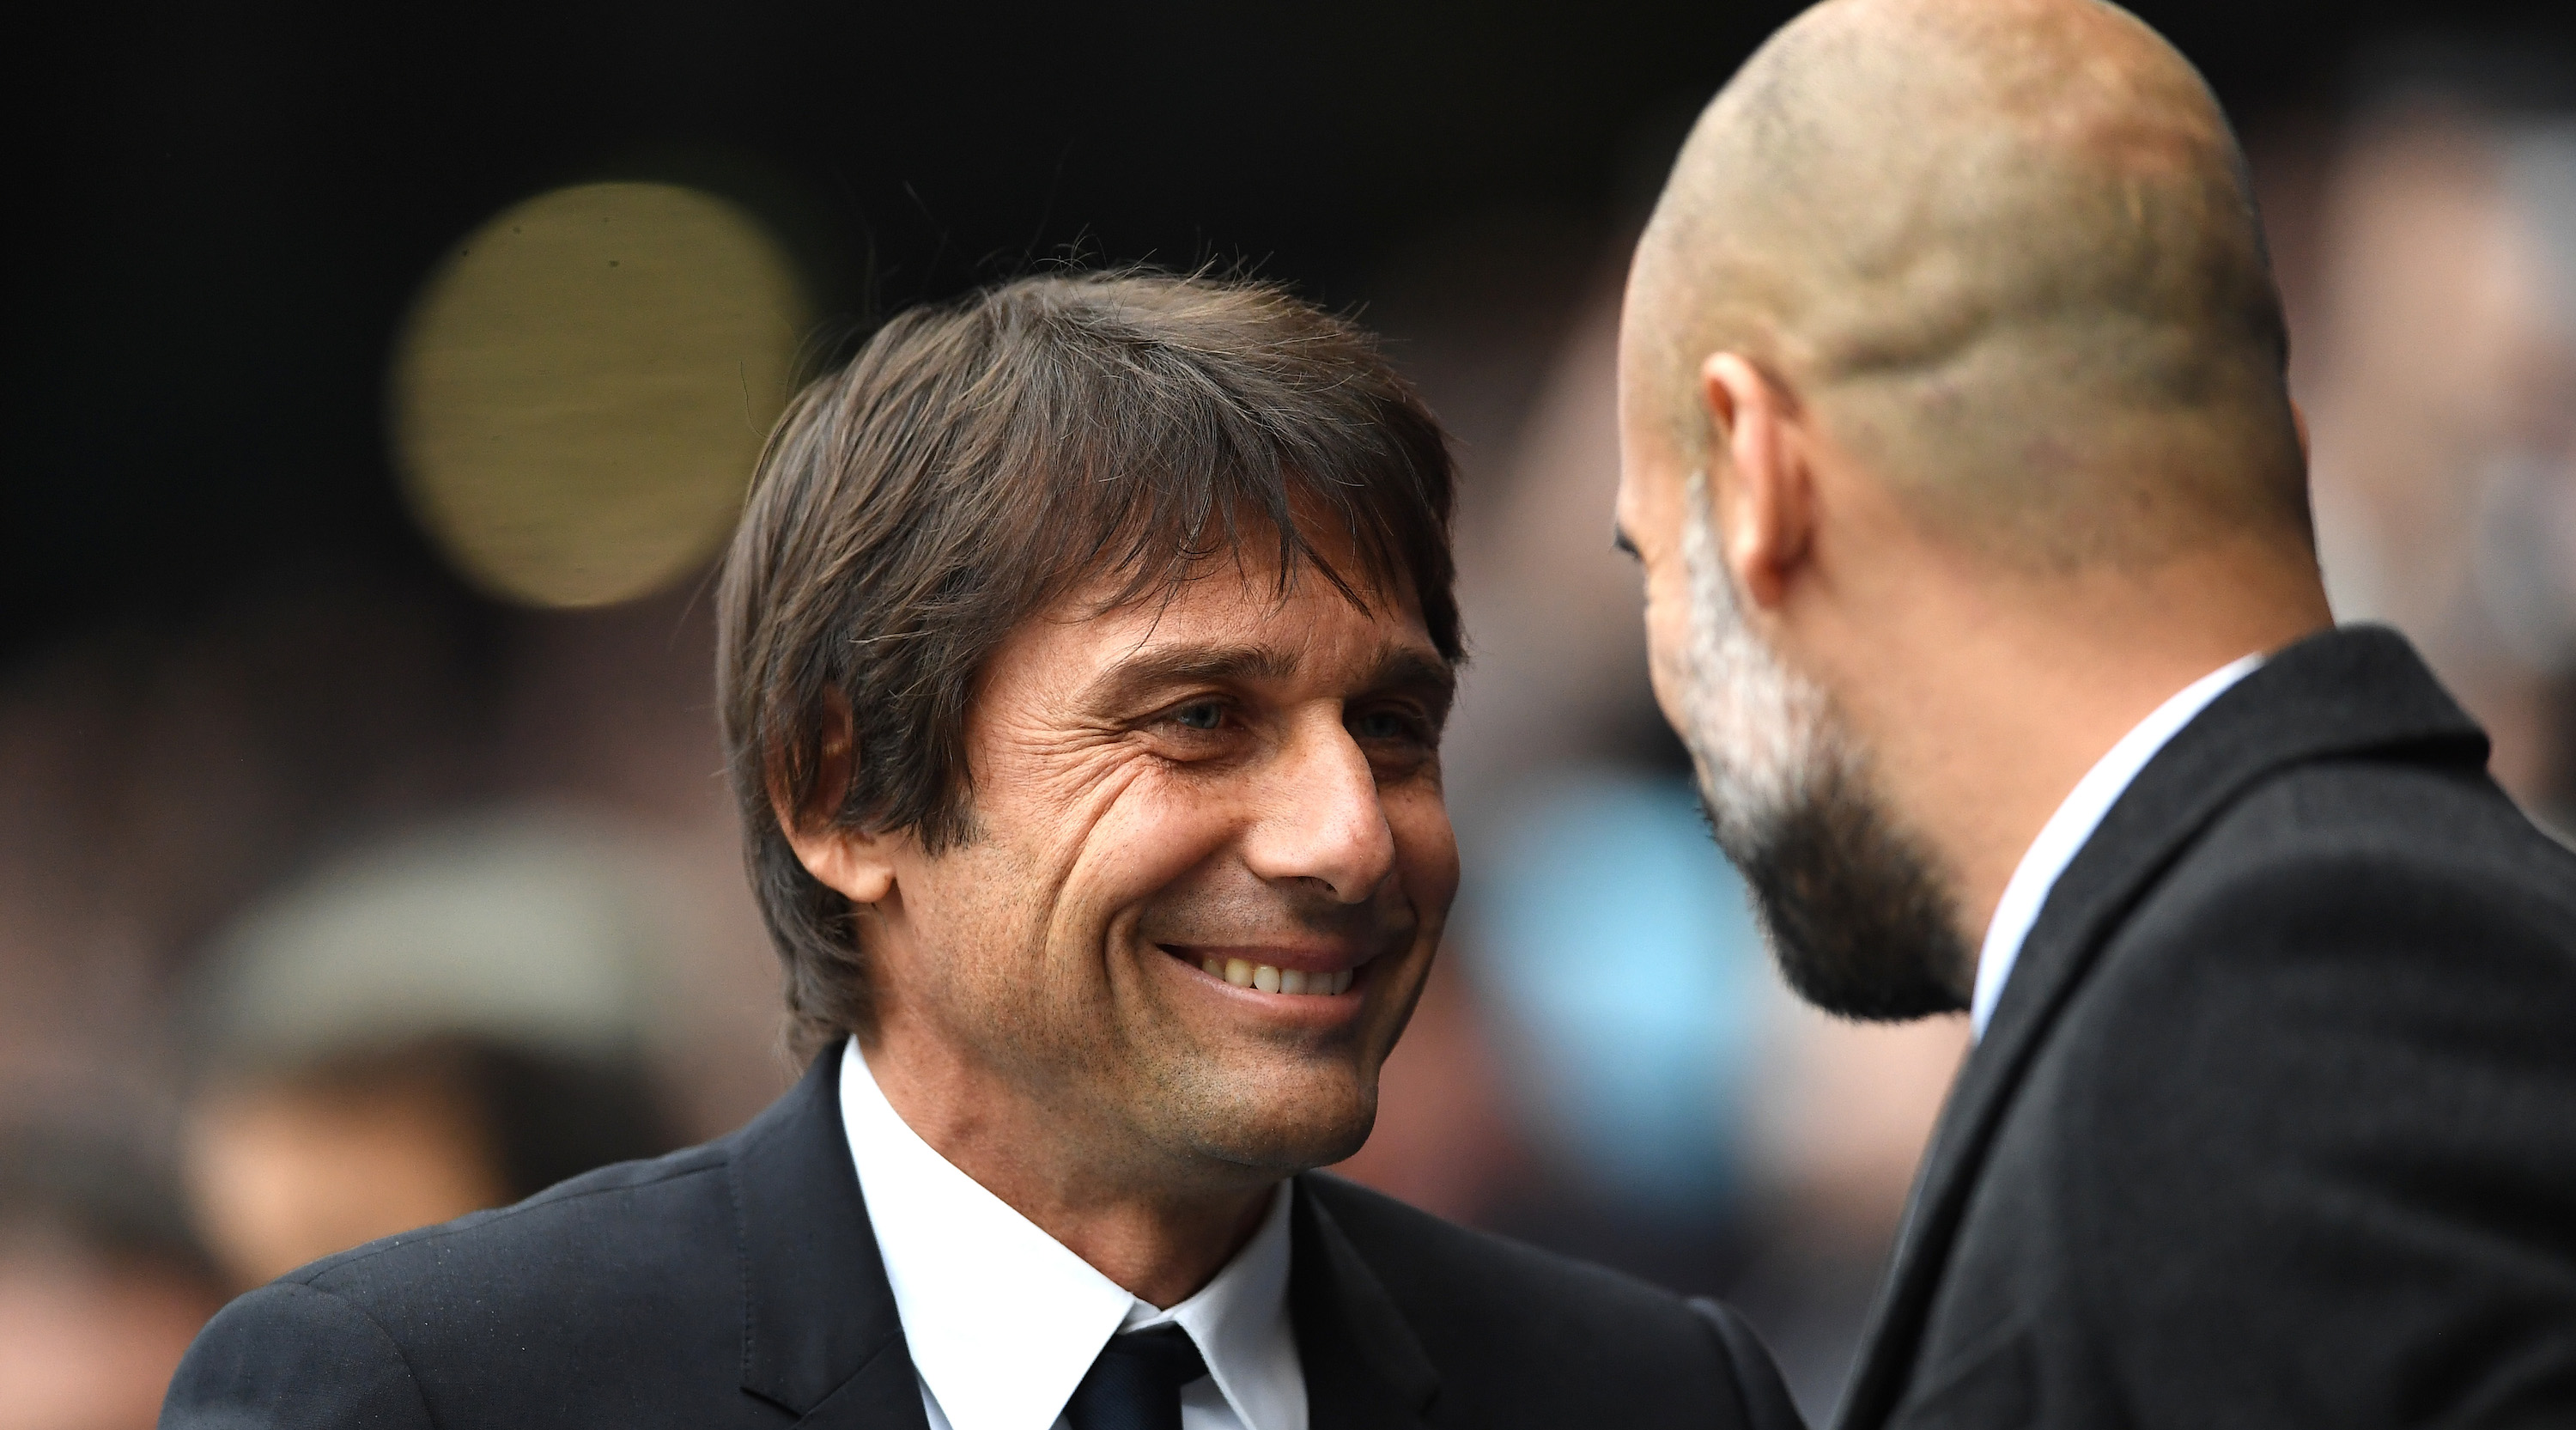 MANCHESTER, ENGLAND - DECEMBER 03: Antonio Conte, Manager of Chelsea and Josep Guardiola, Manager of Manchester City greet prior to the Premier League match between Manchester City and Chelsea at Etihad Stadium on December 3, 2016 in Manchester, England. (Photo by Laurence Griffiths/Getty Images)